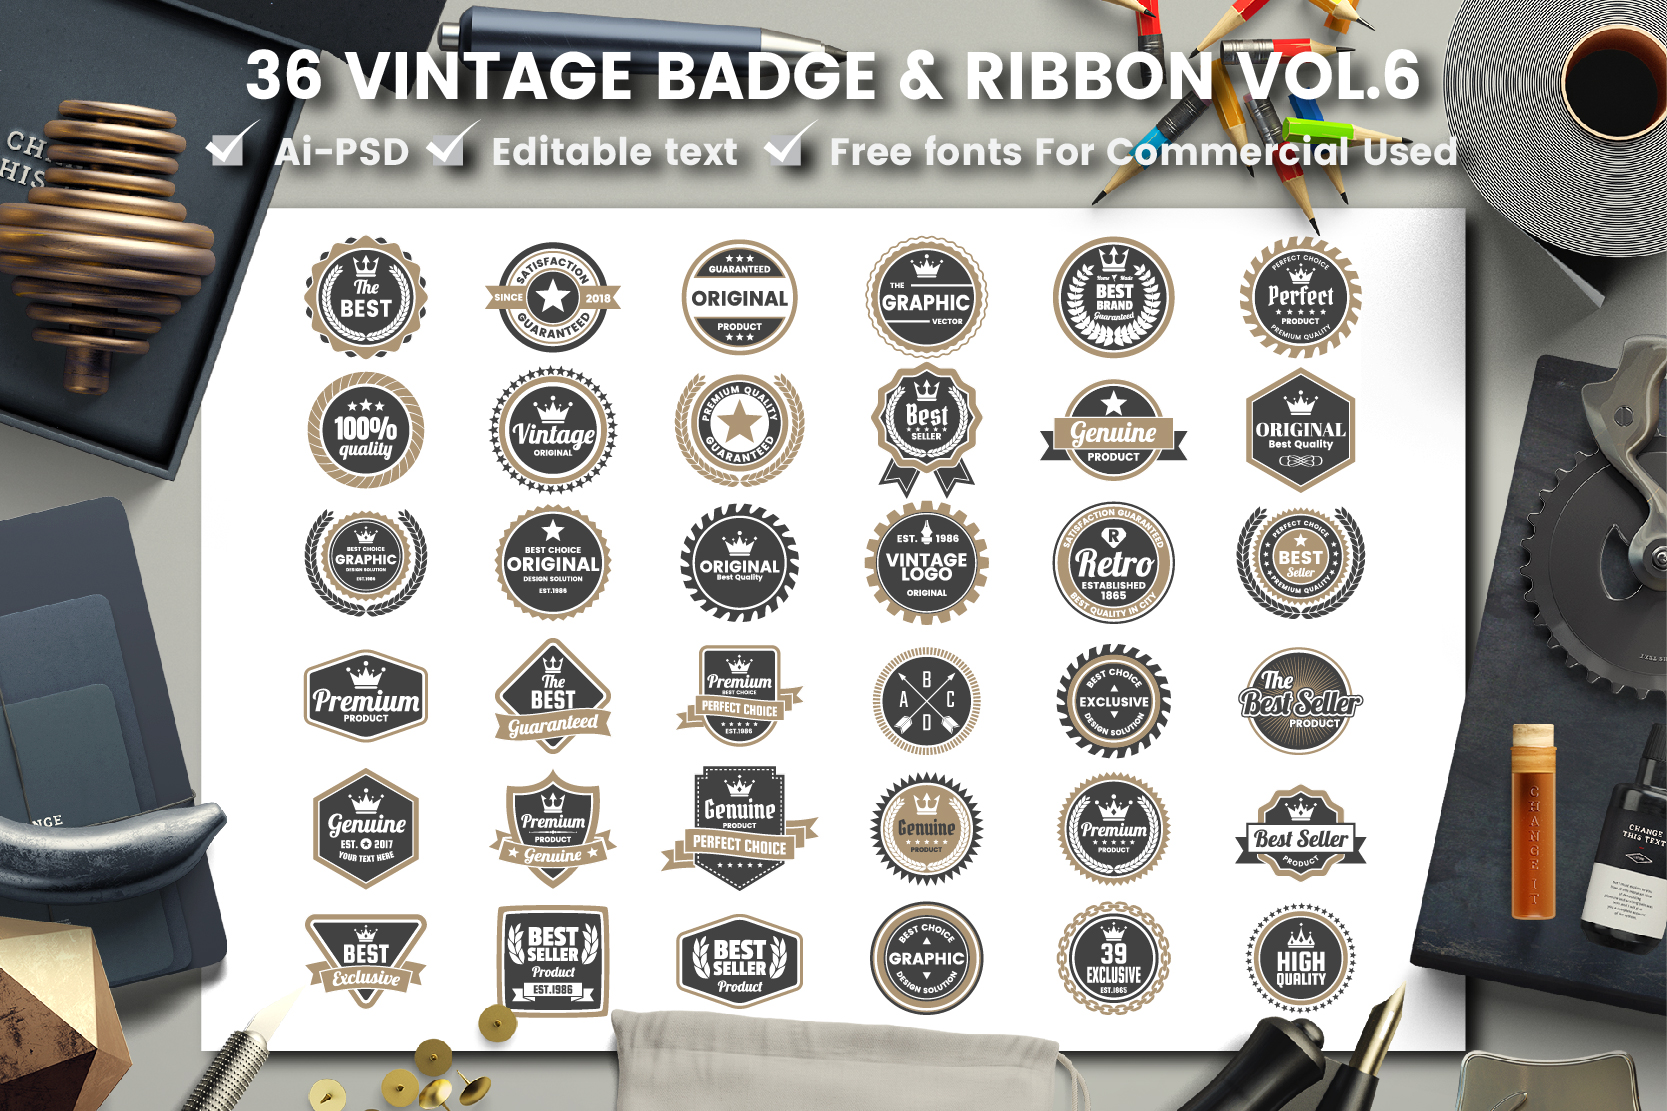 36 VINTAGE BADGE & RIBBON Vol.6 example image 1